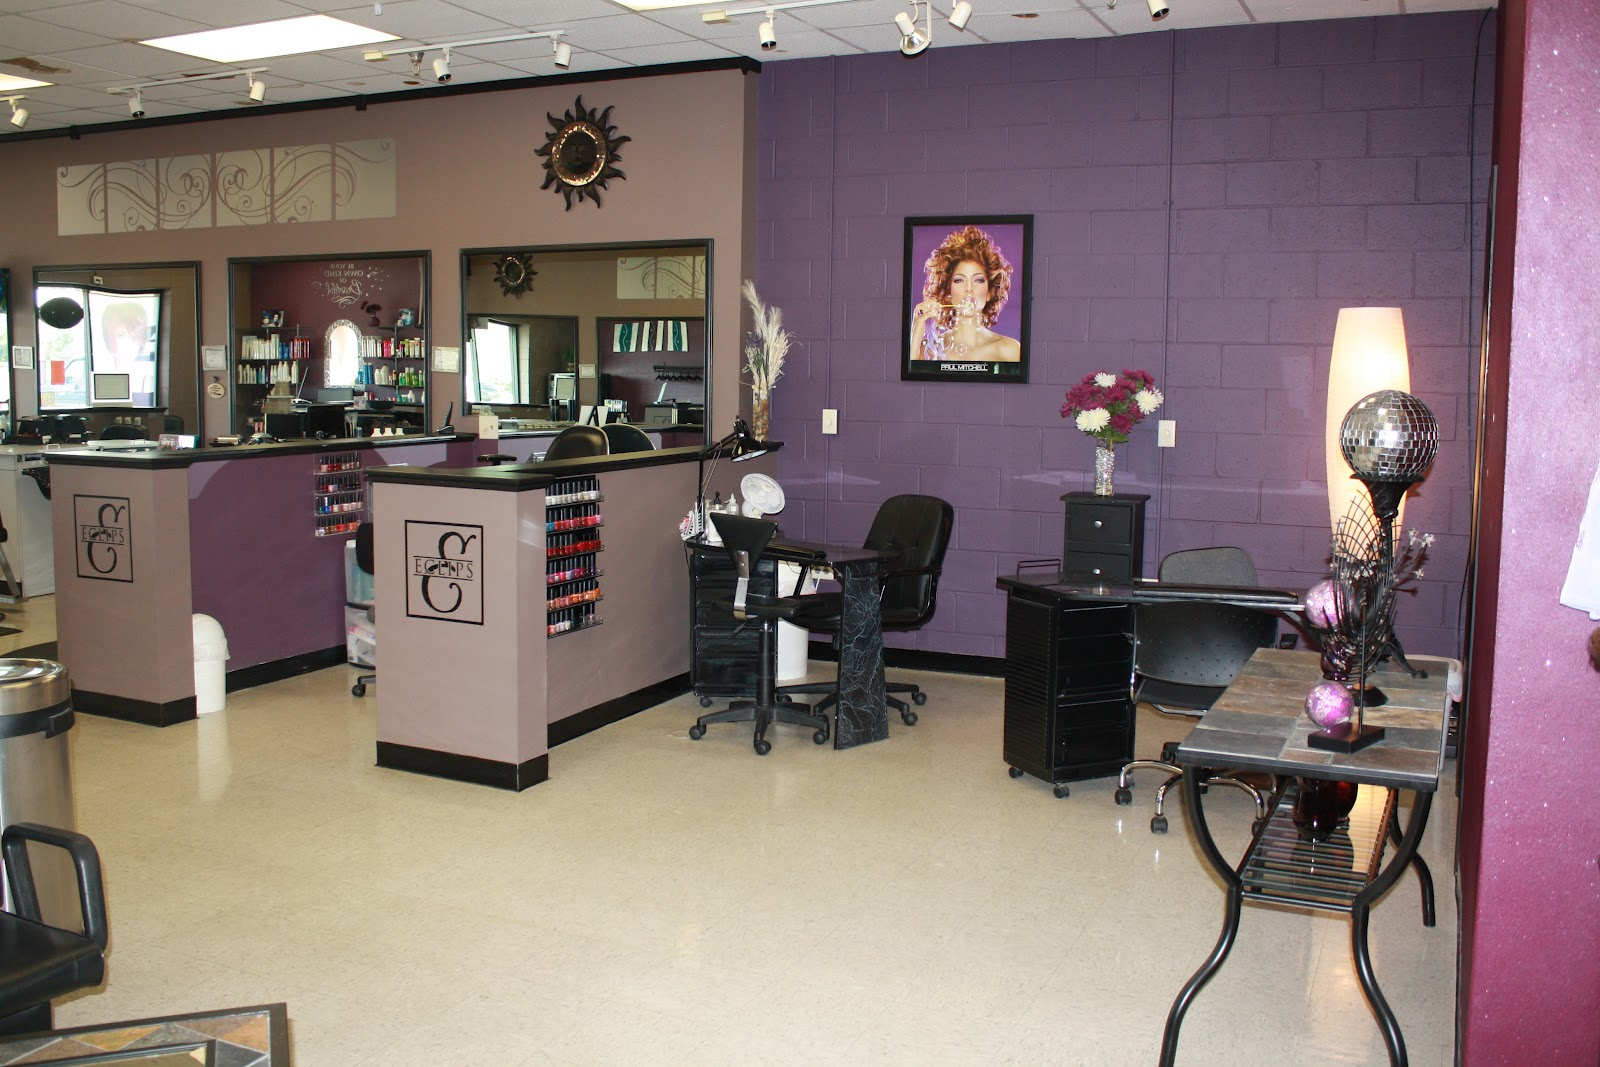 Eclips Salon: Salon Tour